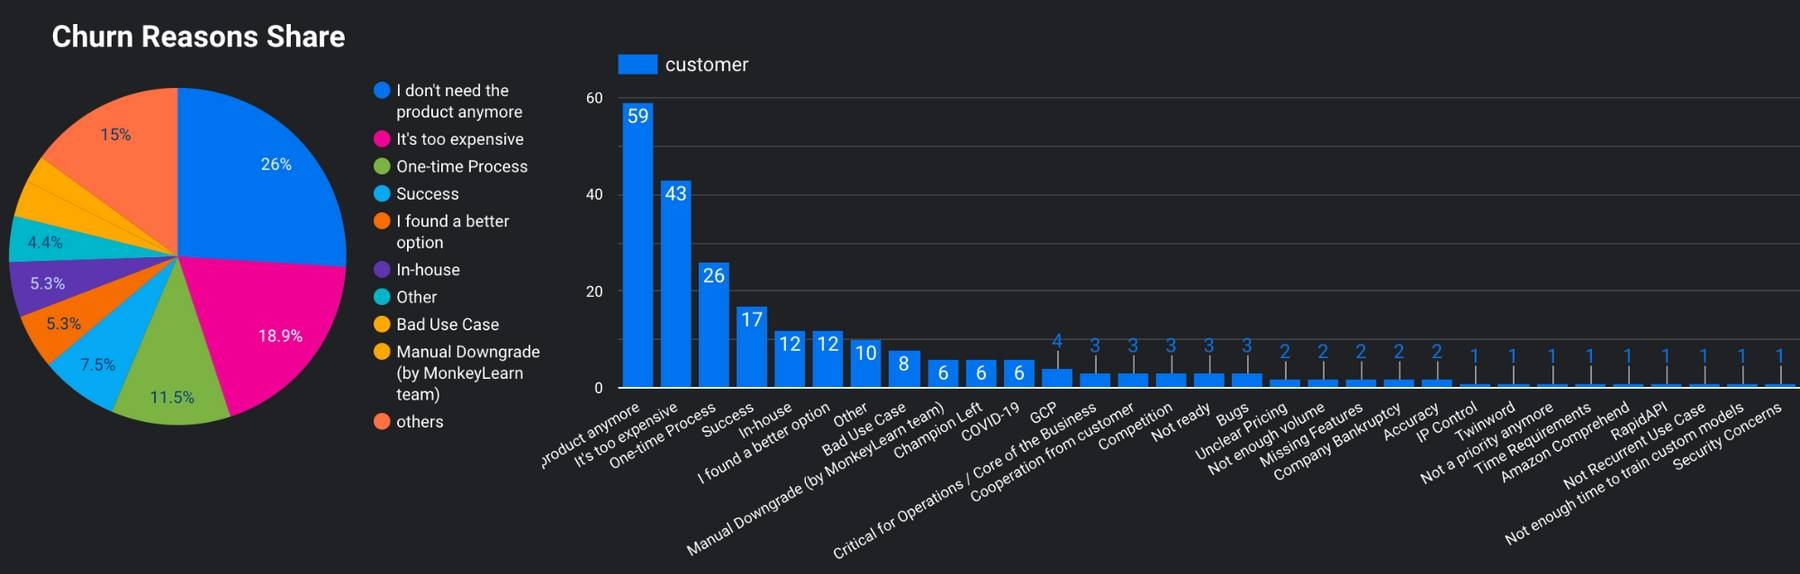 Customer churn analysis visualization showing 'churn reasons share' and number of customers that answered for each.